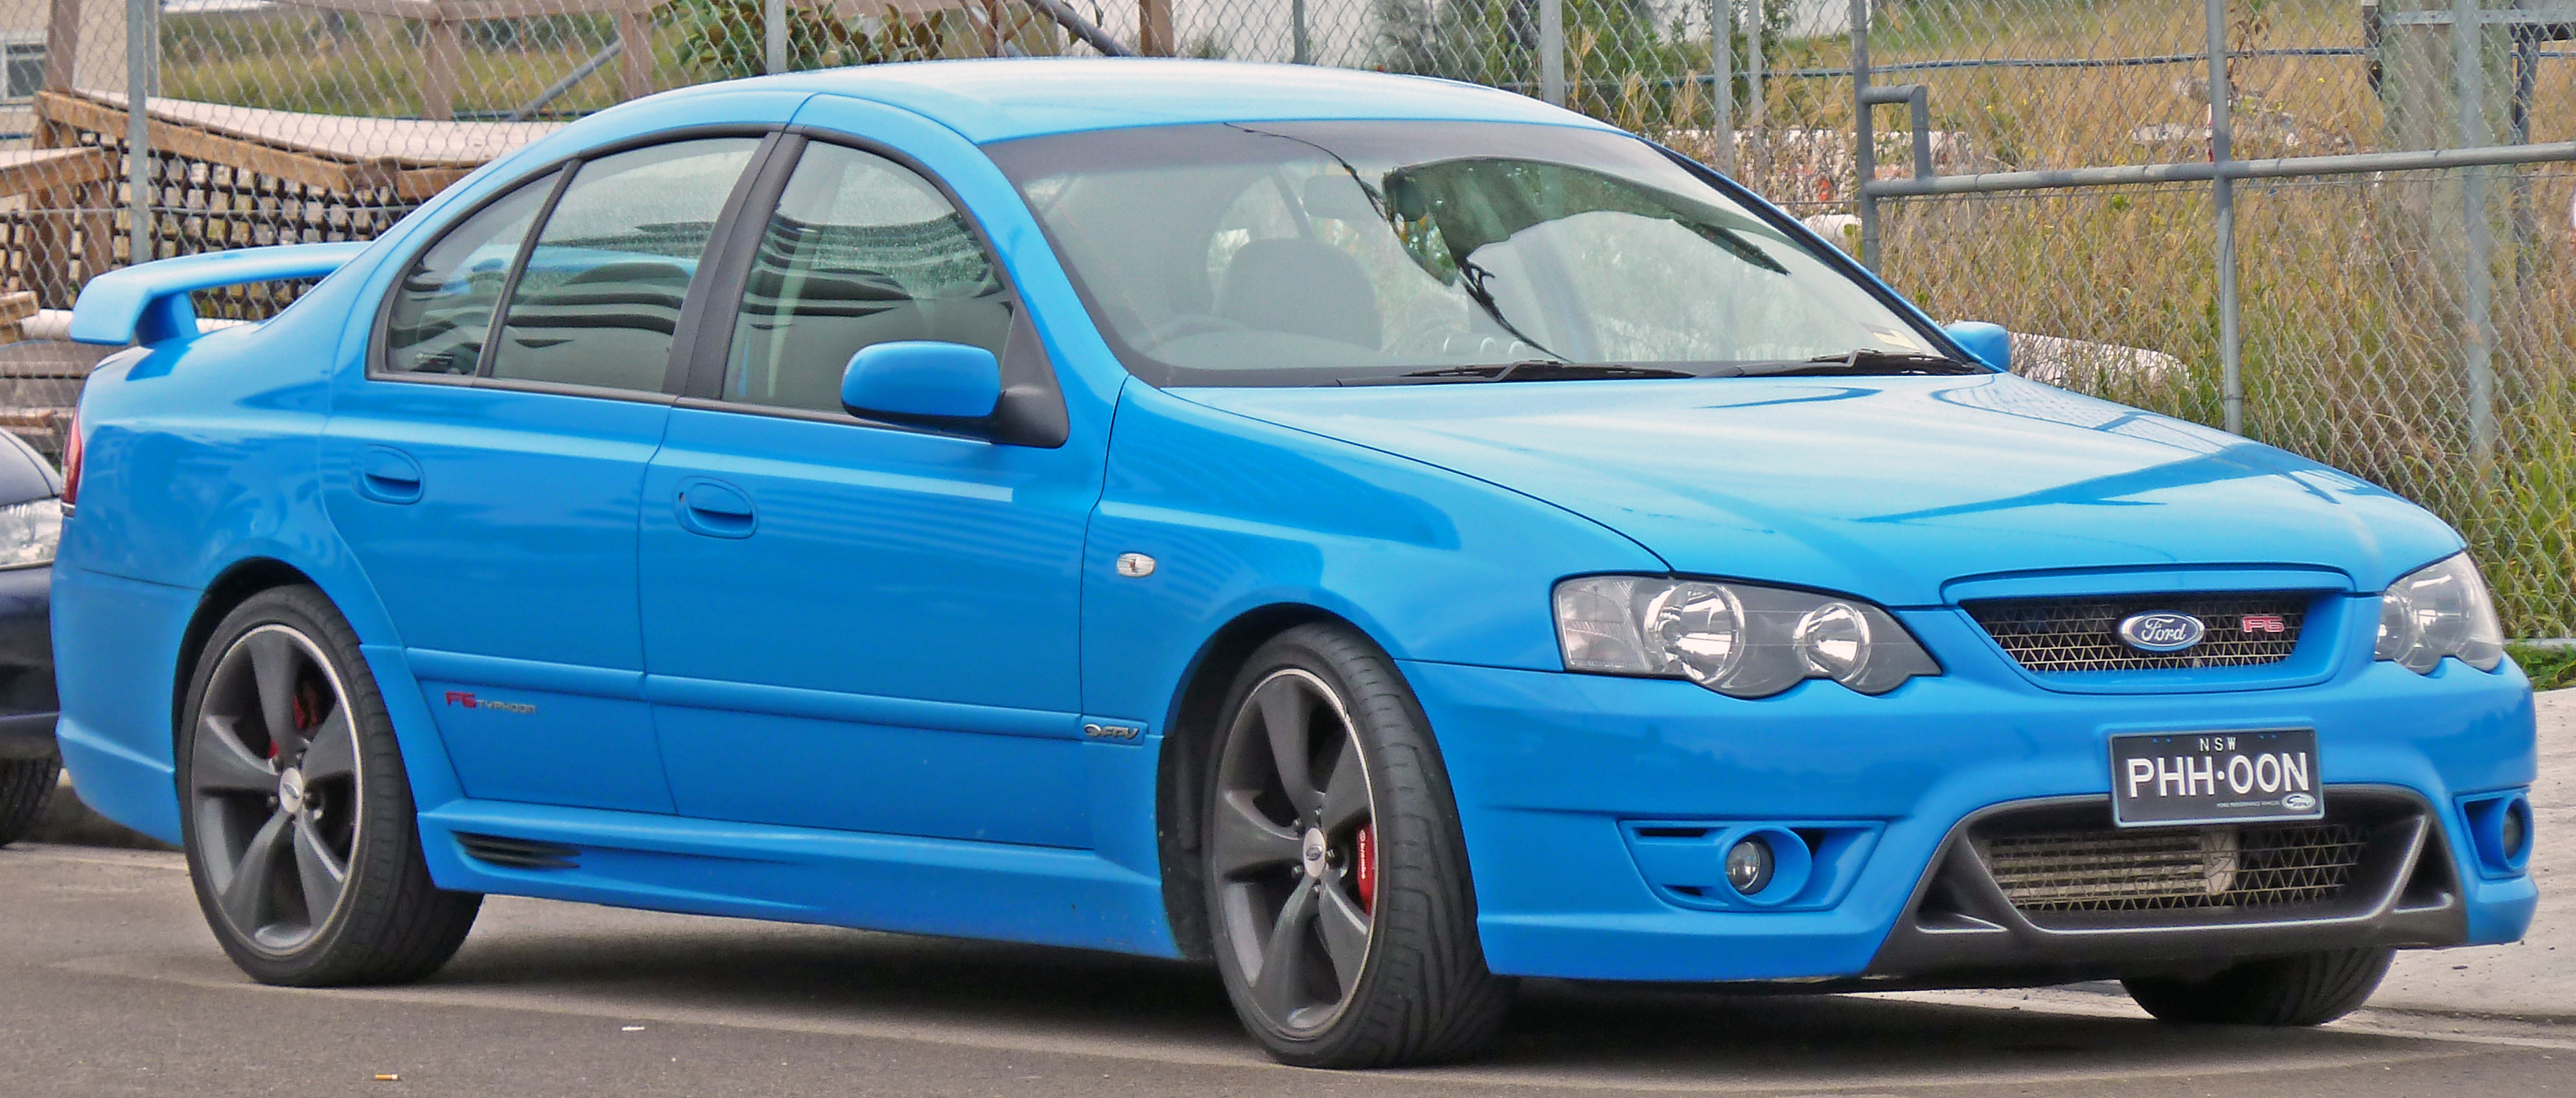 File 2005 2006 FPV F6 Typhoon  BF  sedan 01 moreover Xp falcon likewise Photostream additionally 92089560 together with Another Led Taillight Question. on ford xm falcon